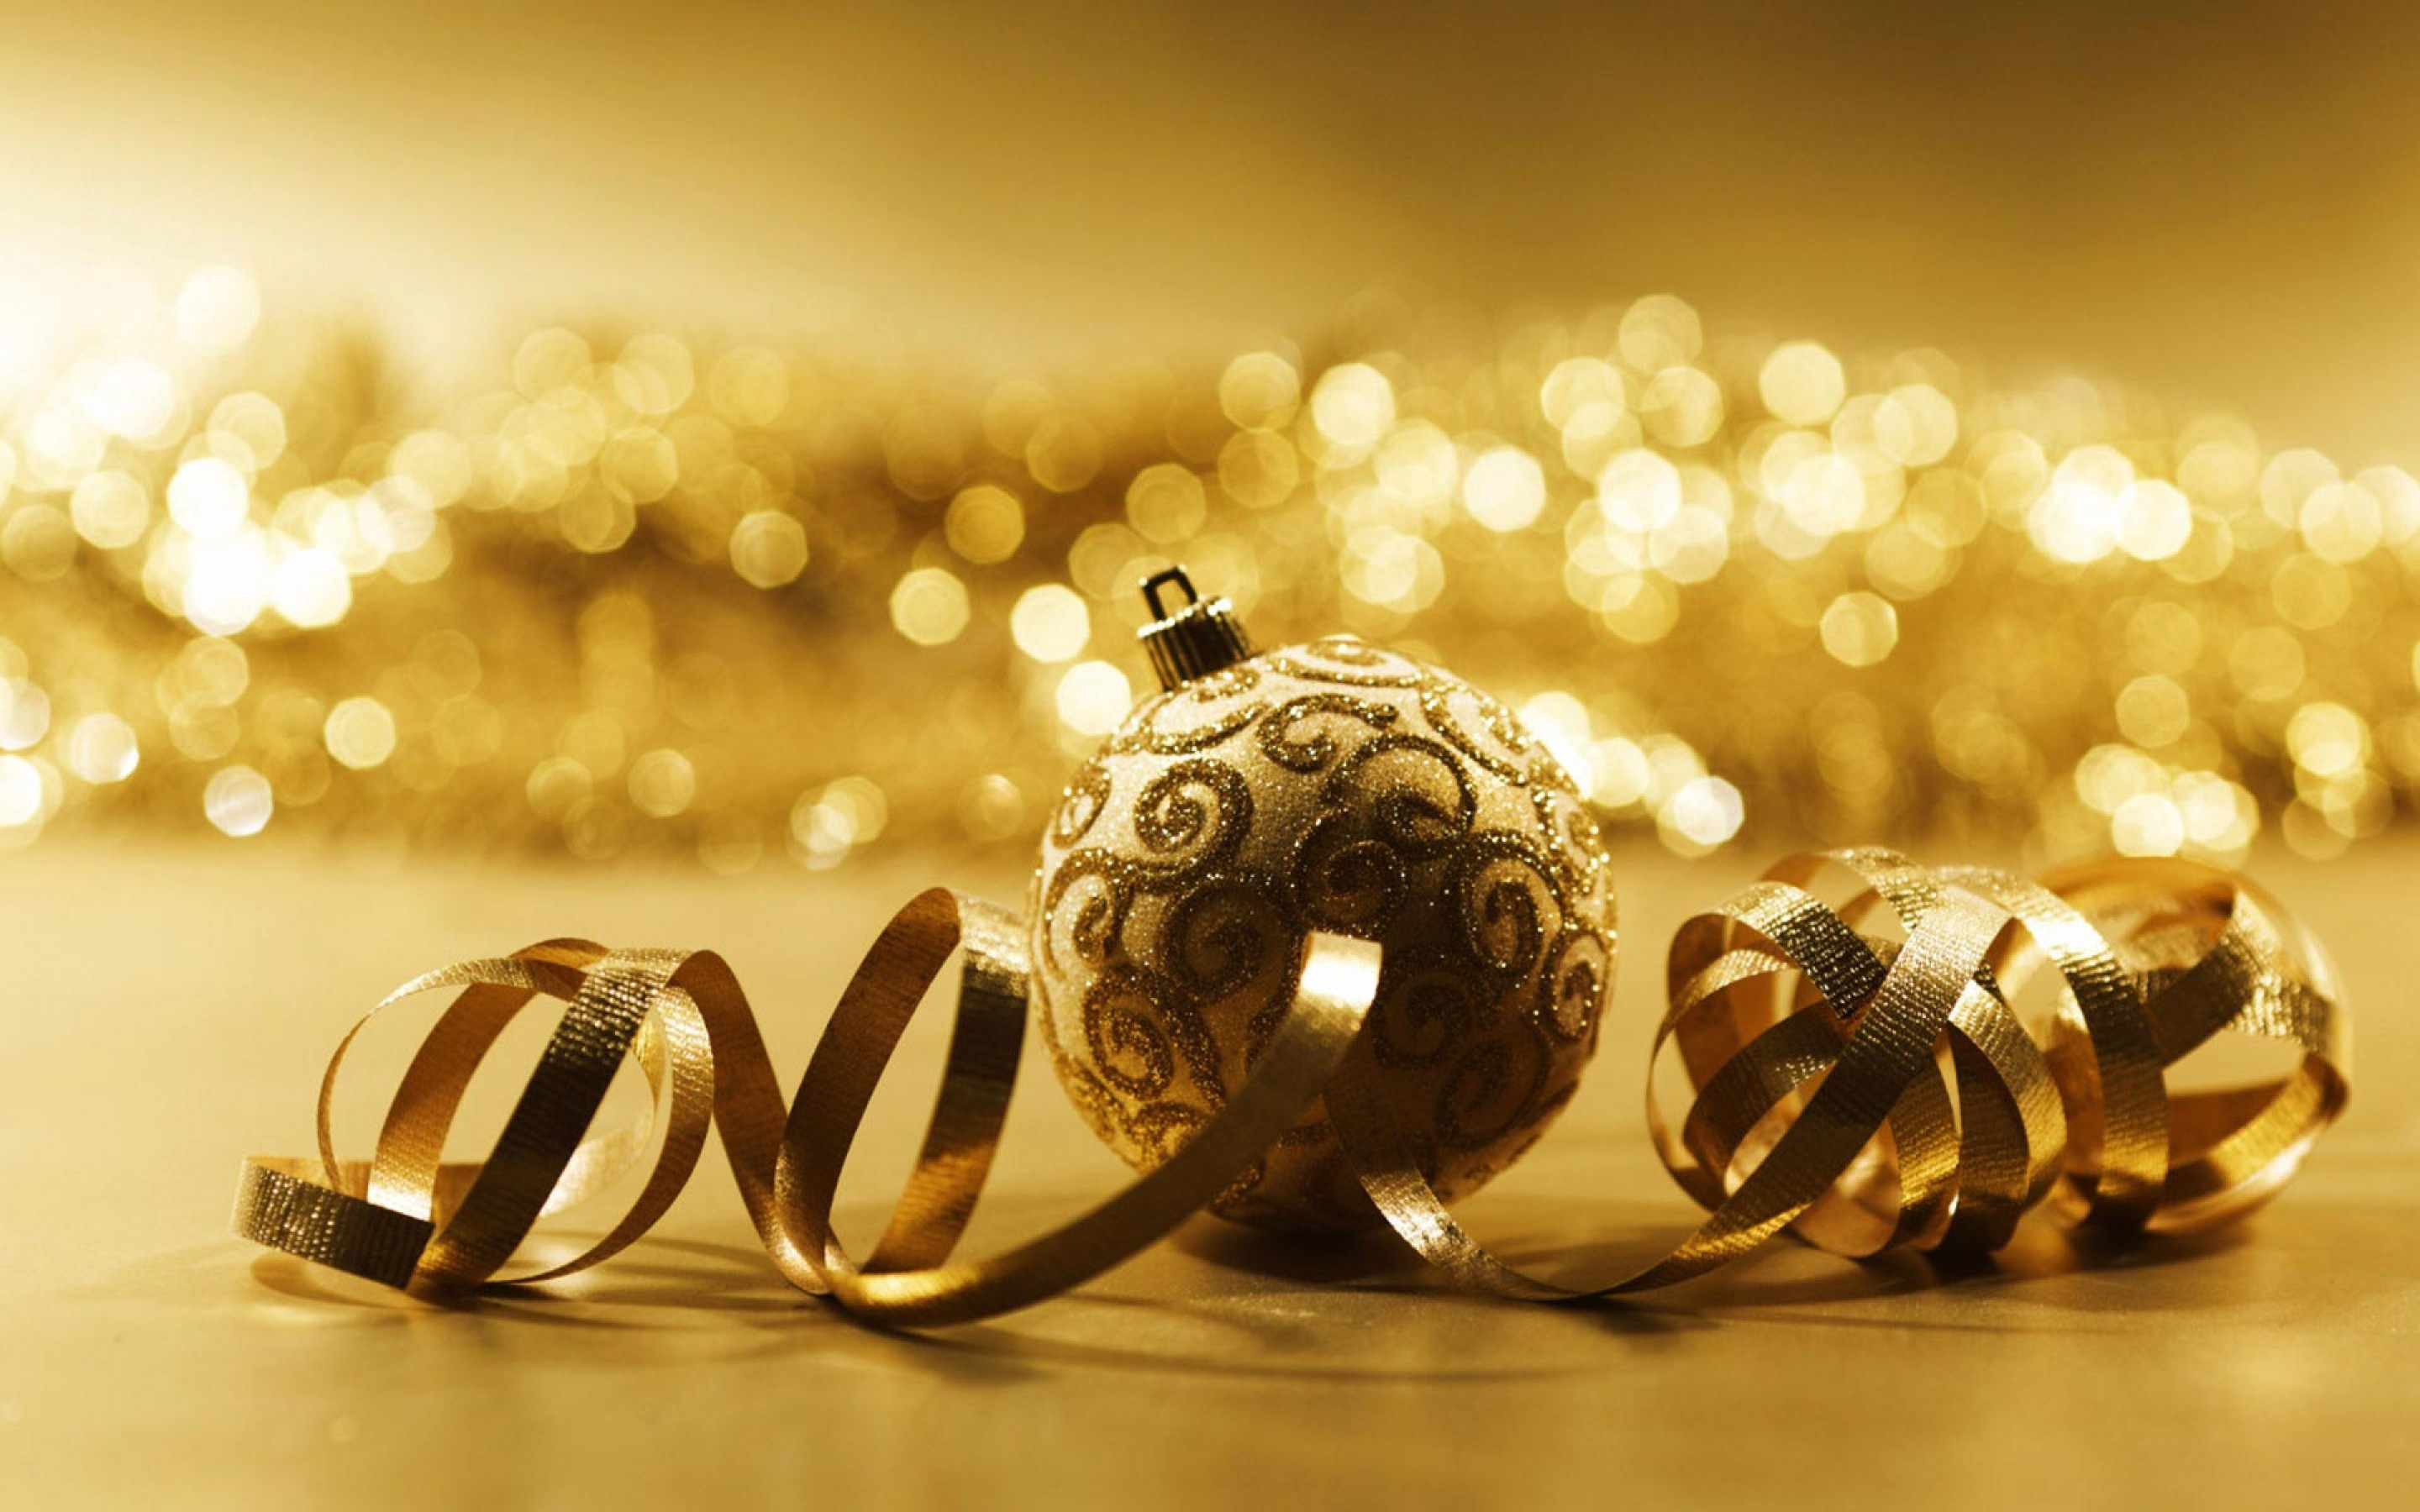 Free Desktop Wallpaper Beautiful Superb Super Cool Wallpapers Wide Screen Download Hd Golden Christmas 2 2880x1800